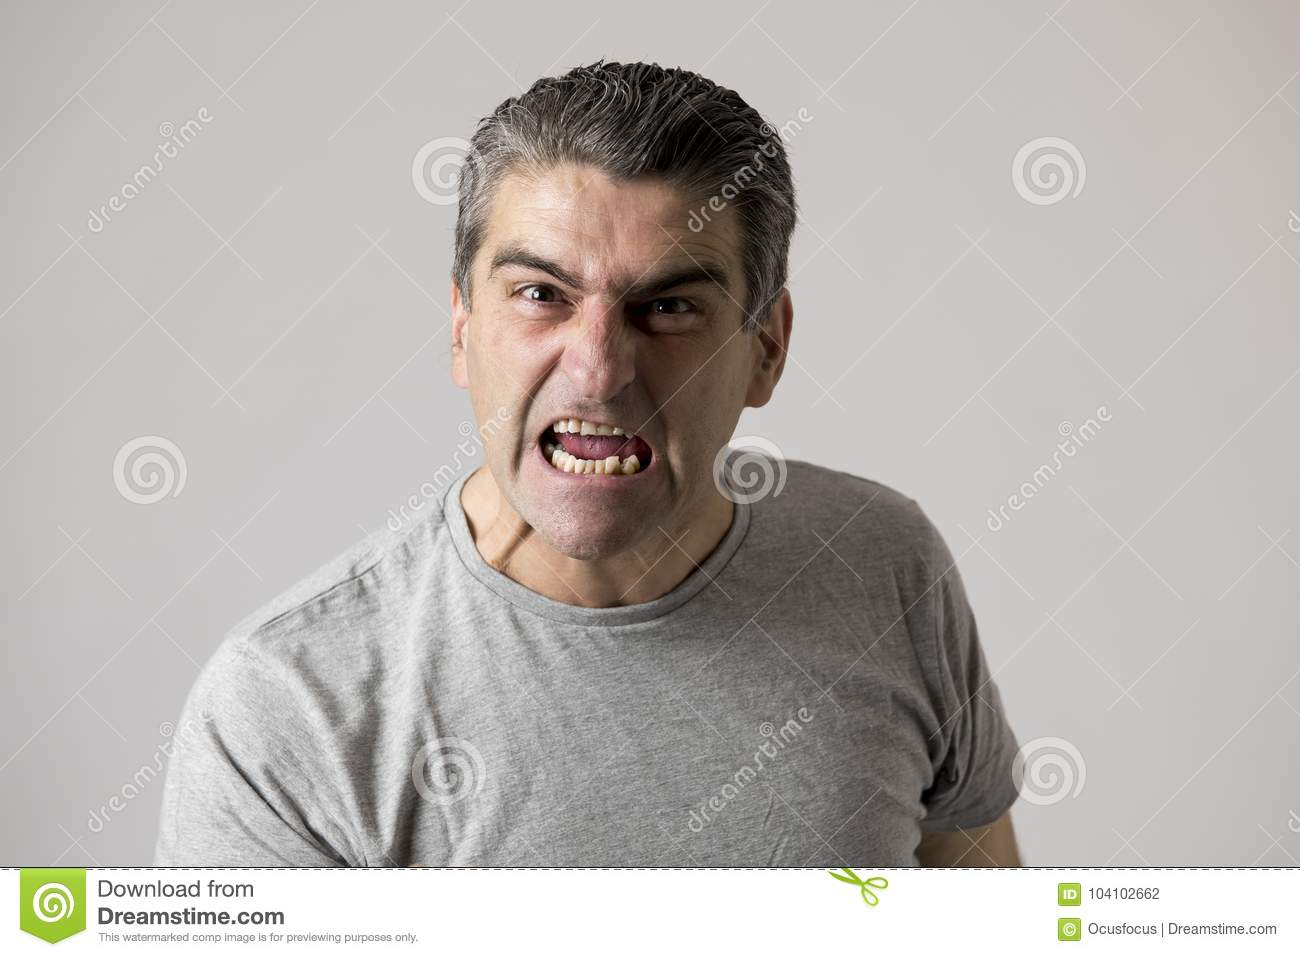 Portrait of 40s to 50s white angry and upset guy and crazy furious and aggressive face expression nagging and complaining